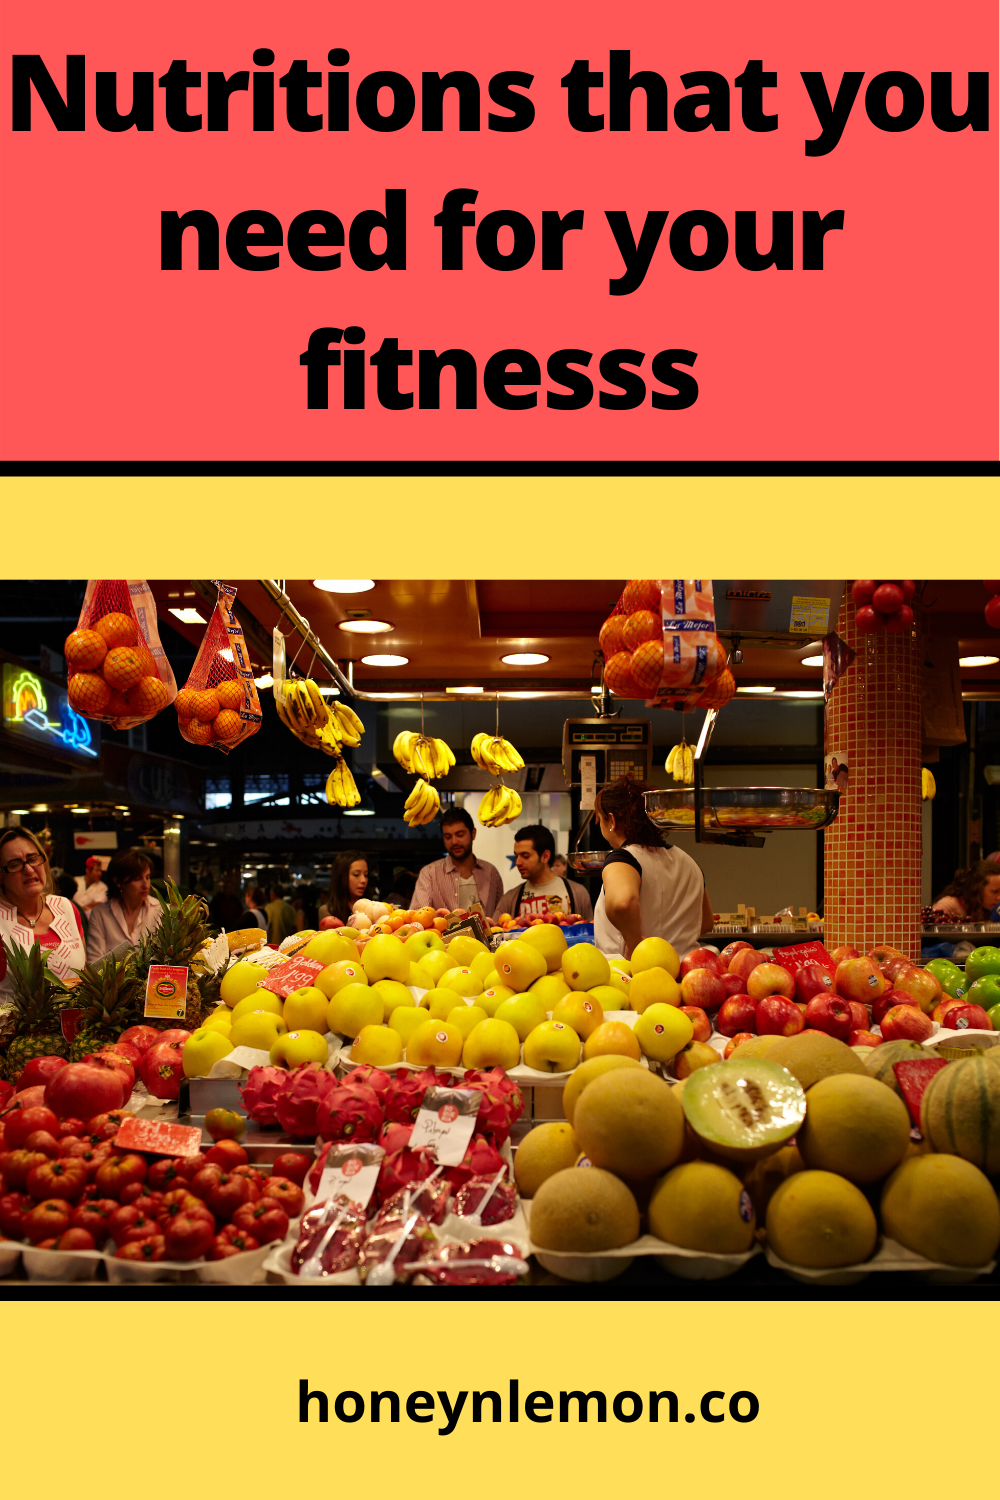 When you look at fitness and nutrition and the consequences of ignoring their importance, it is not...